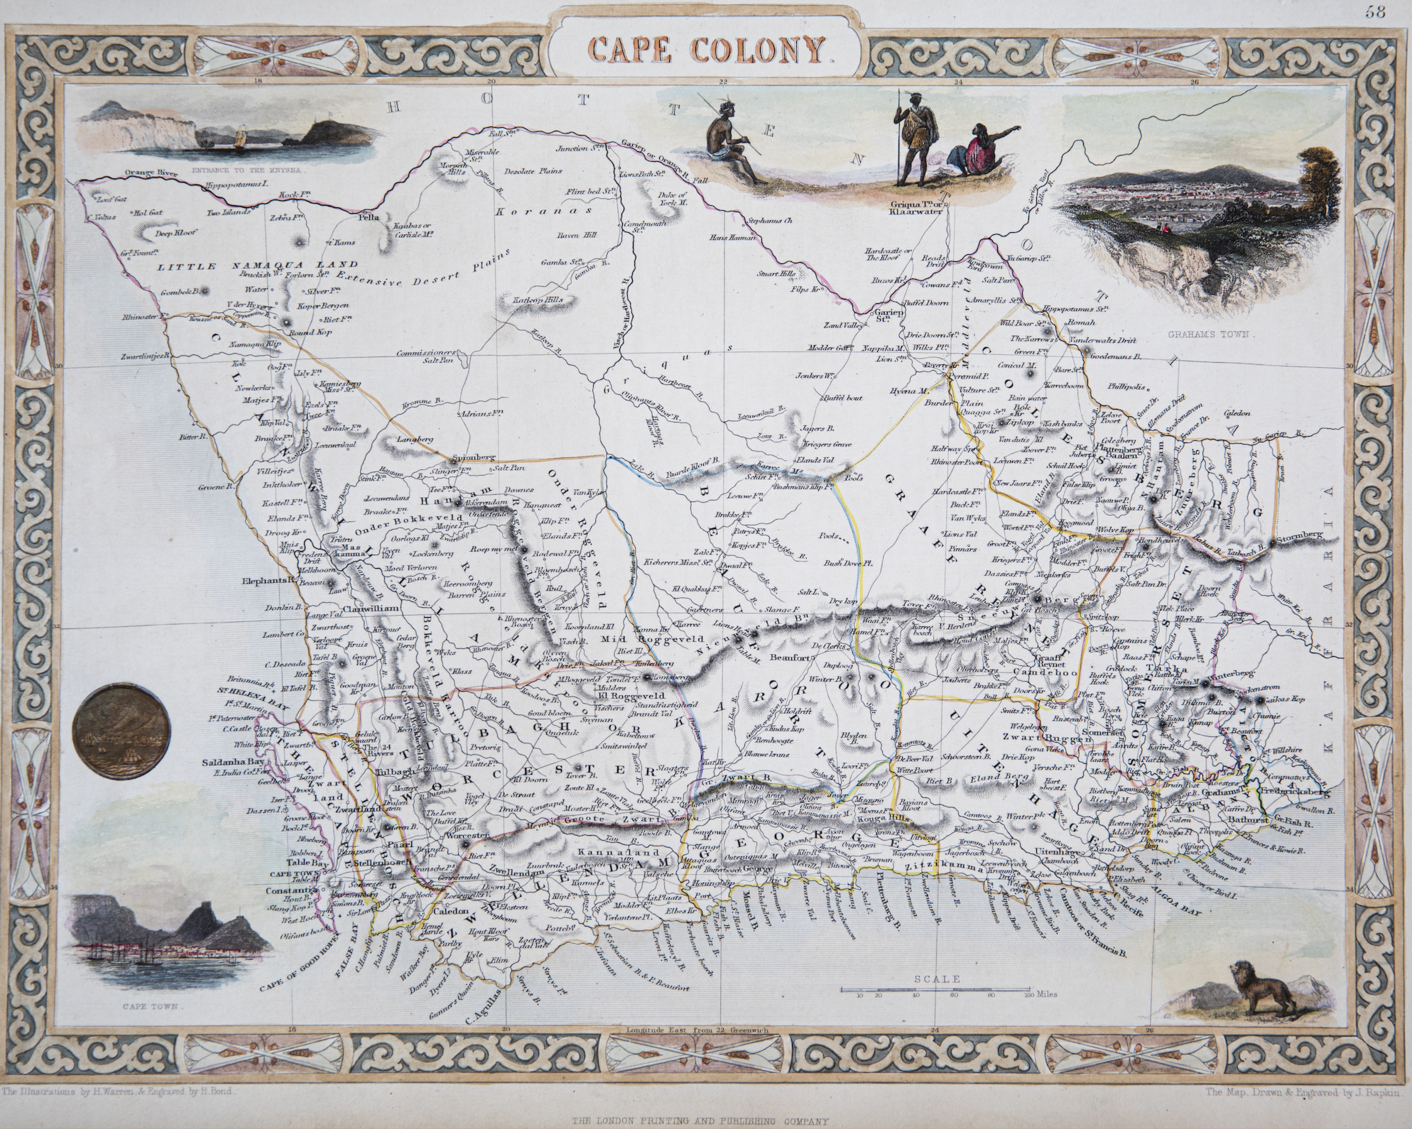 Tallis Map of the Cape Colony, 1850. 1850 Tallis Map of the Cape Colony.png